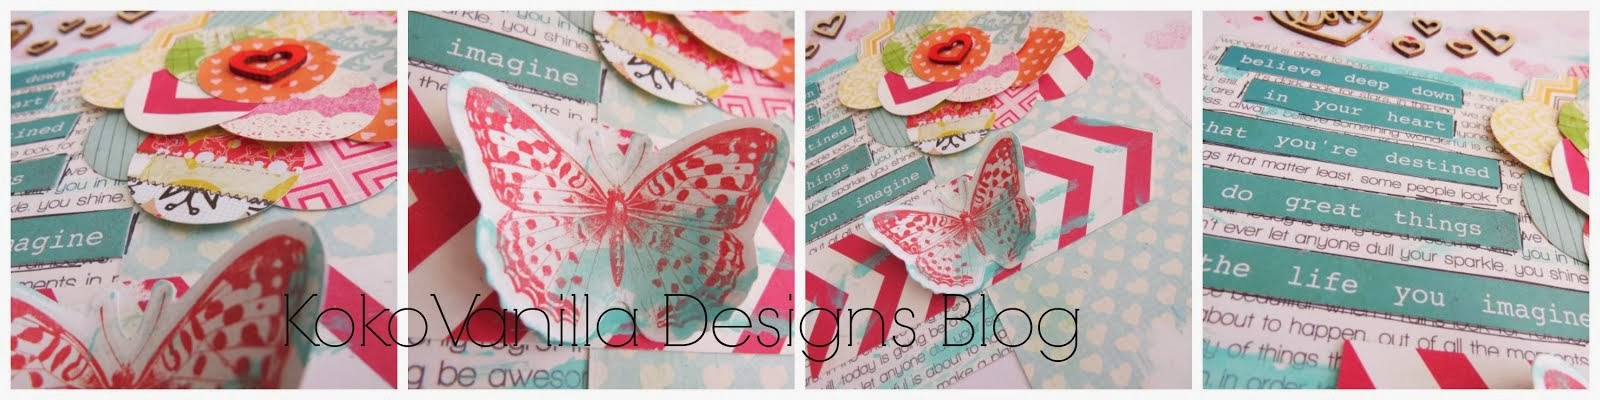 Koko Vanilla Designs Blog